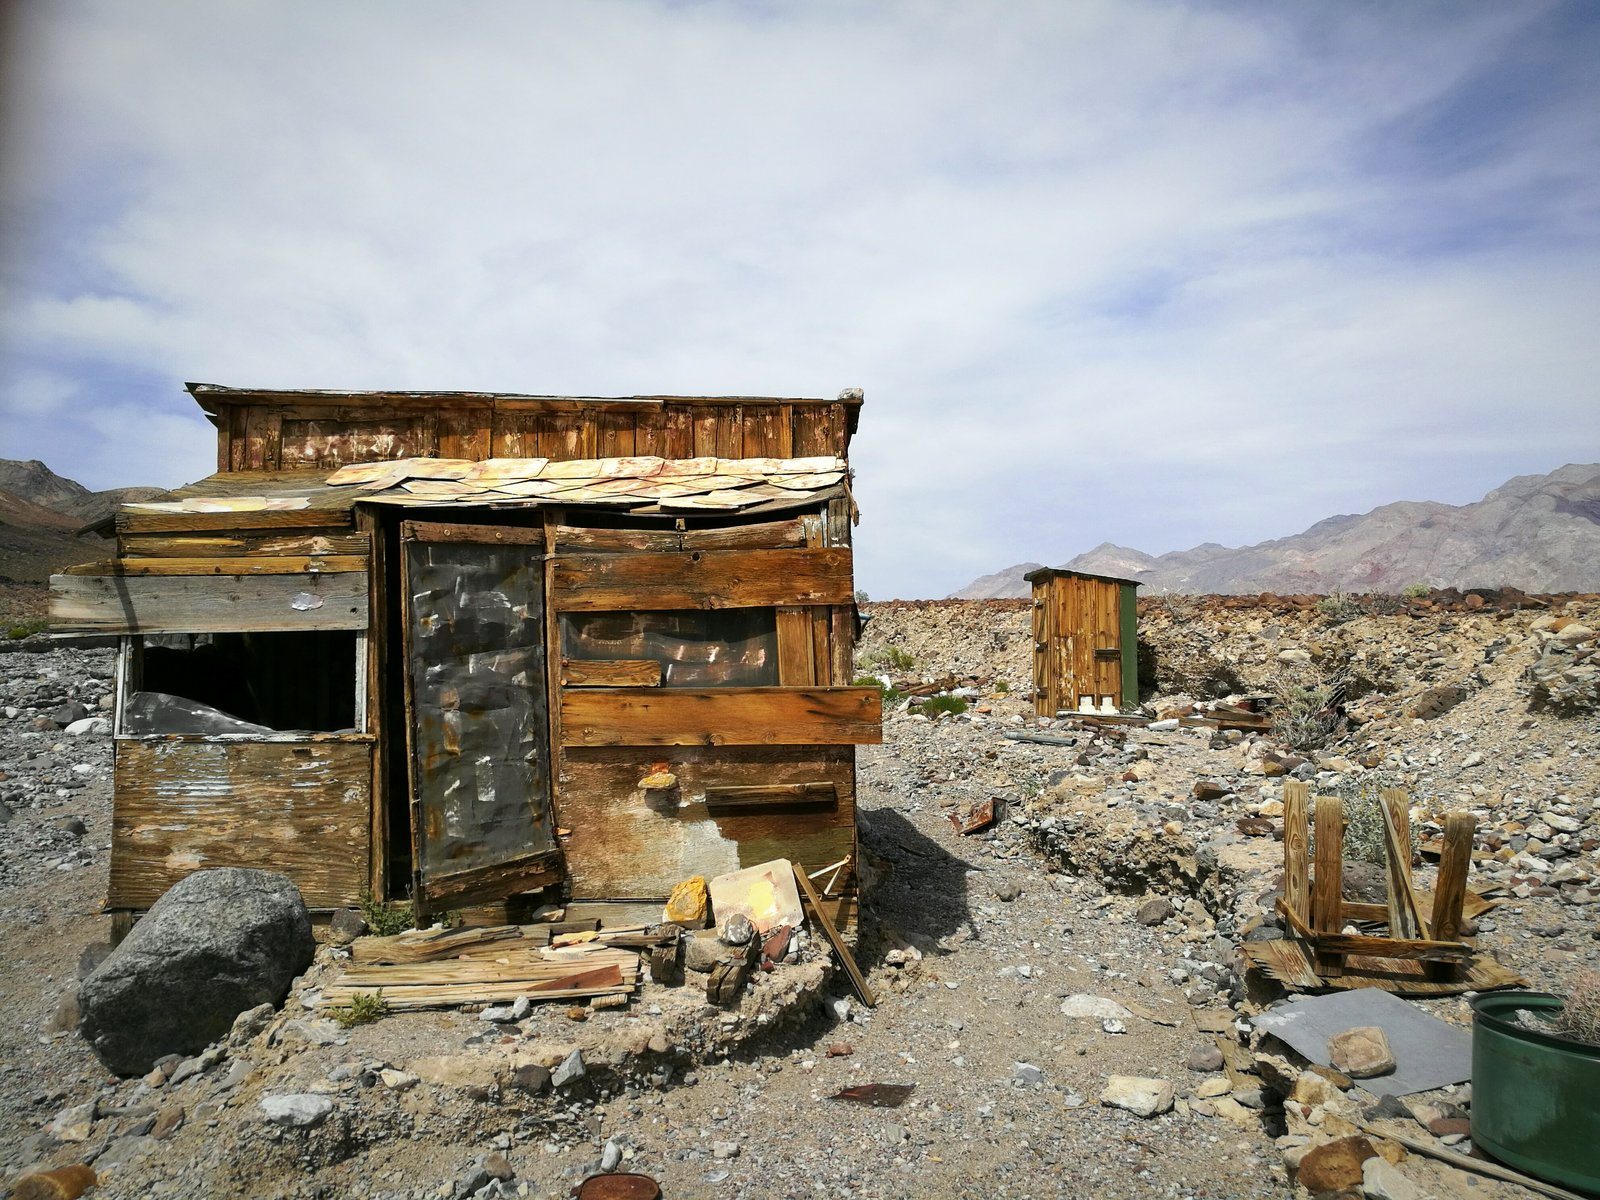 img_20170422_150021-jpg.37806_Where my Heart Lives; Dakotas to Death Valley_Travel Stories_Squat the Planet_10:07 AM